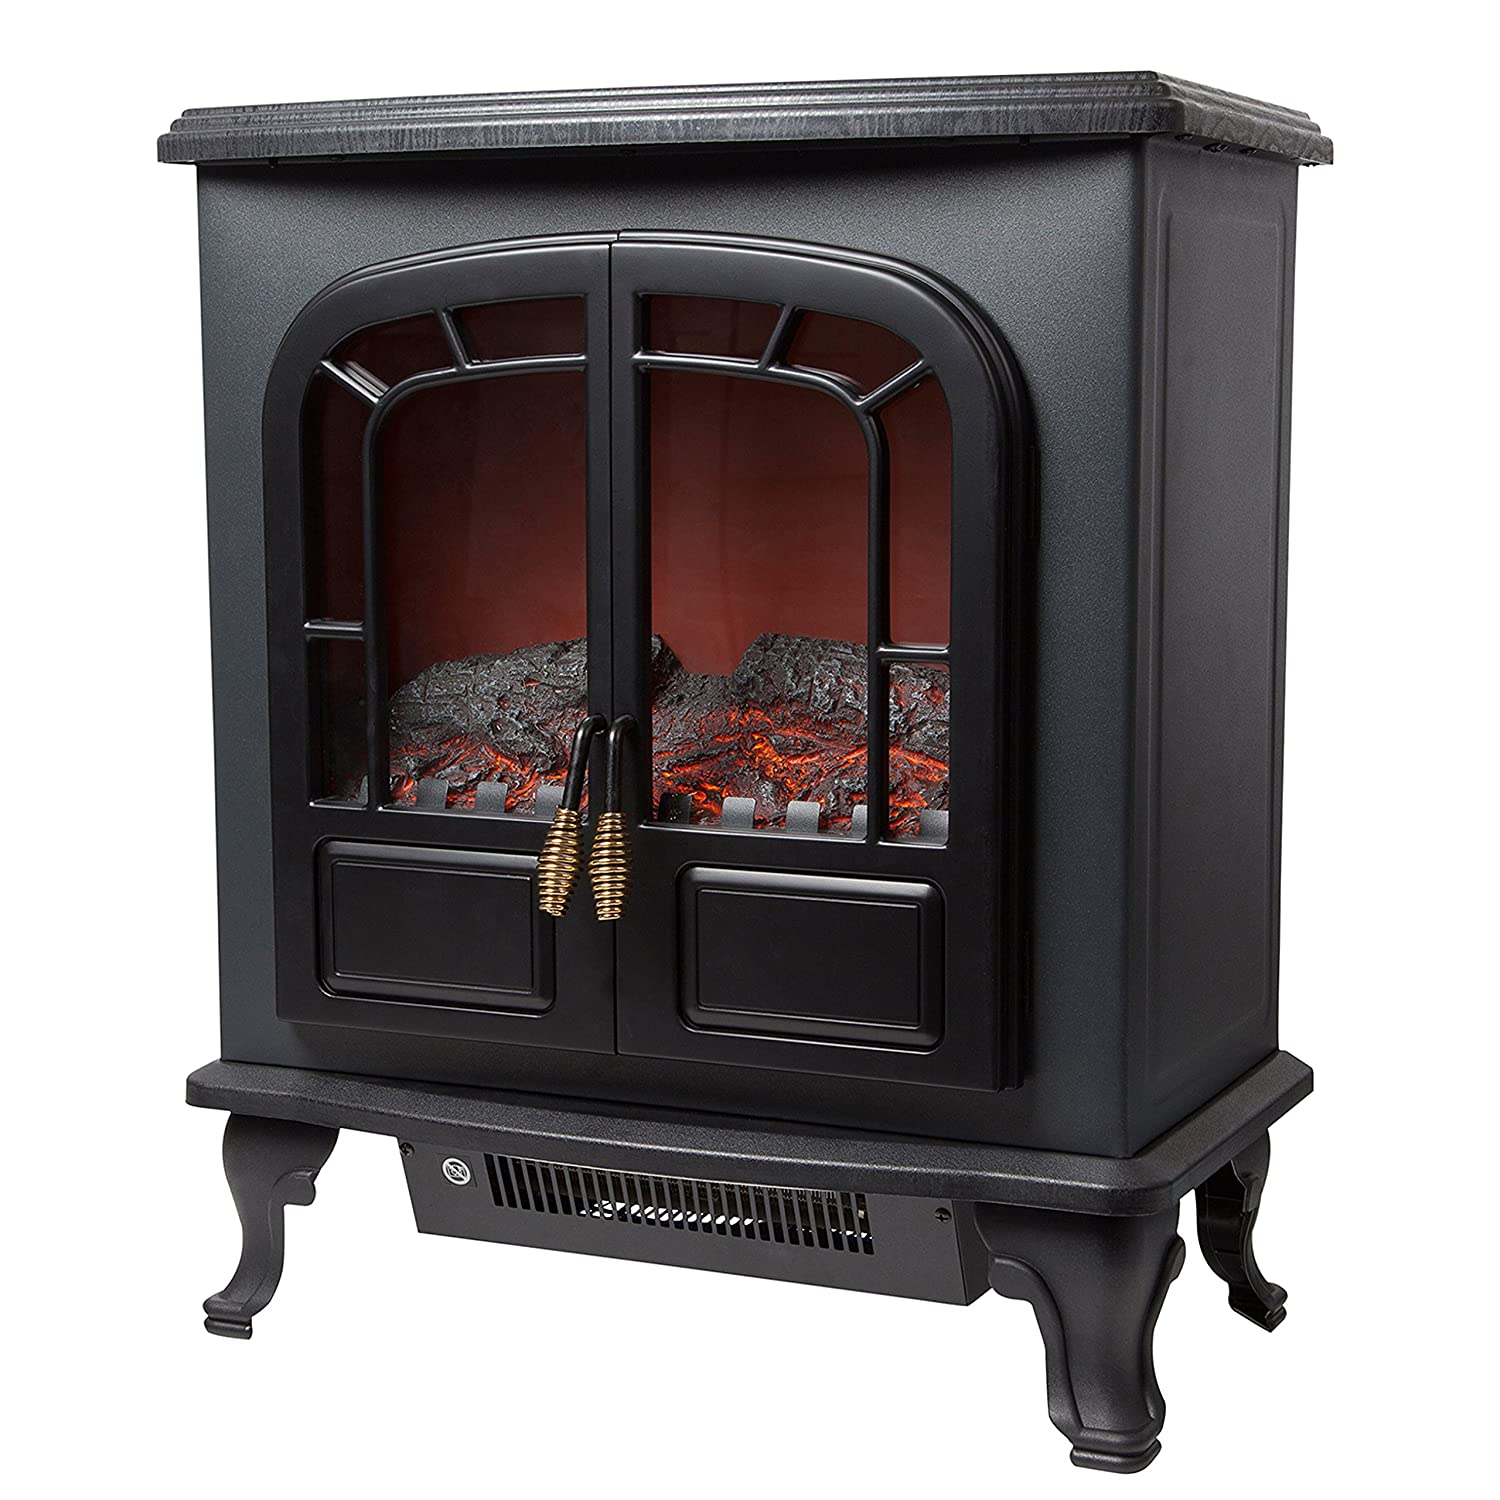 Warmlite WL46017 Log Effect Stove Fire, 1800 W, Black with Curve Effect Design